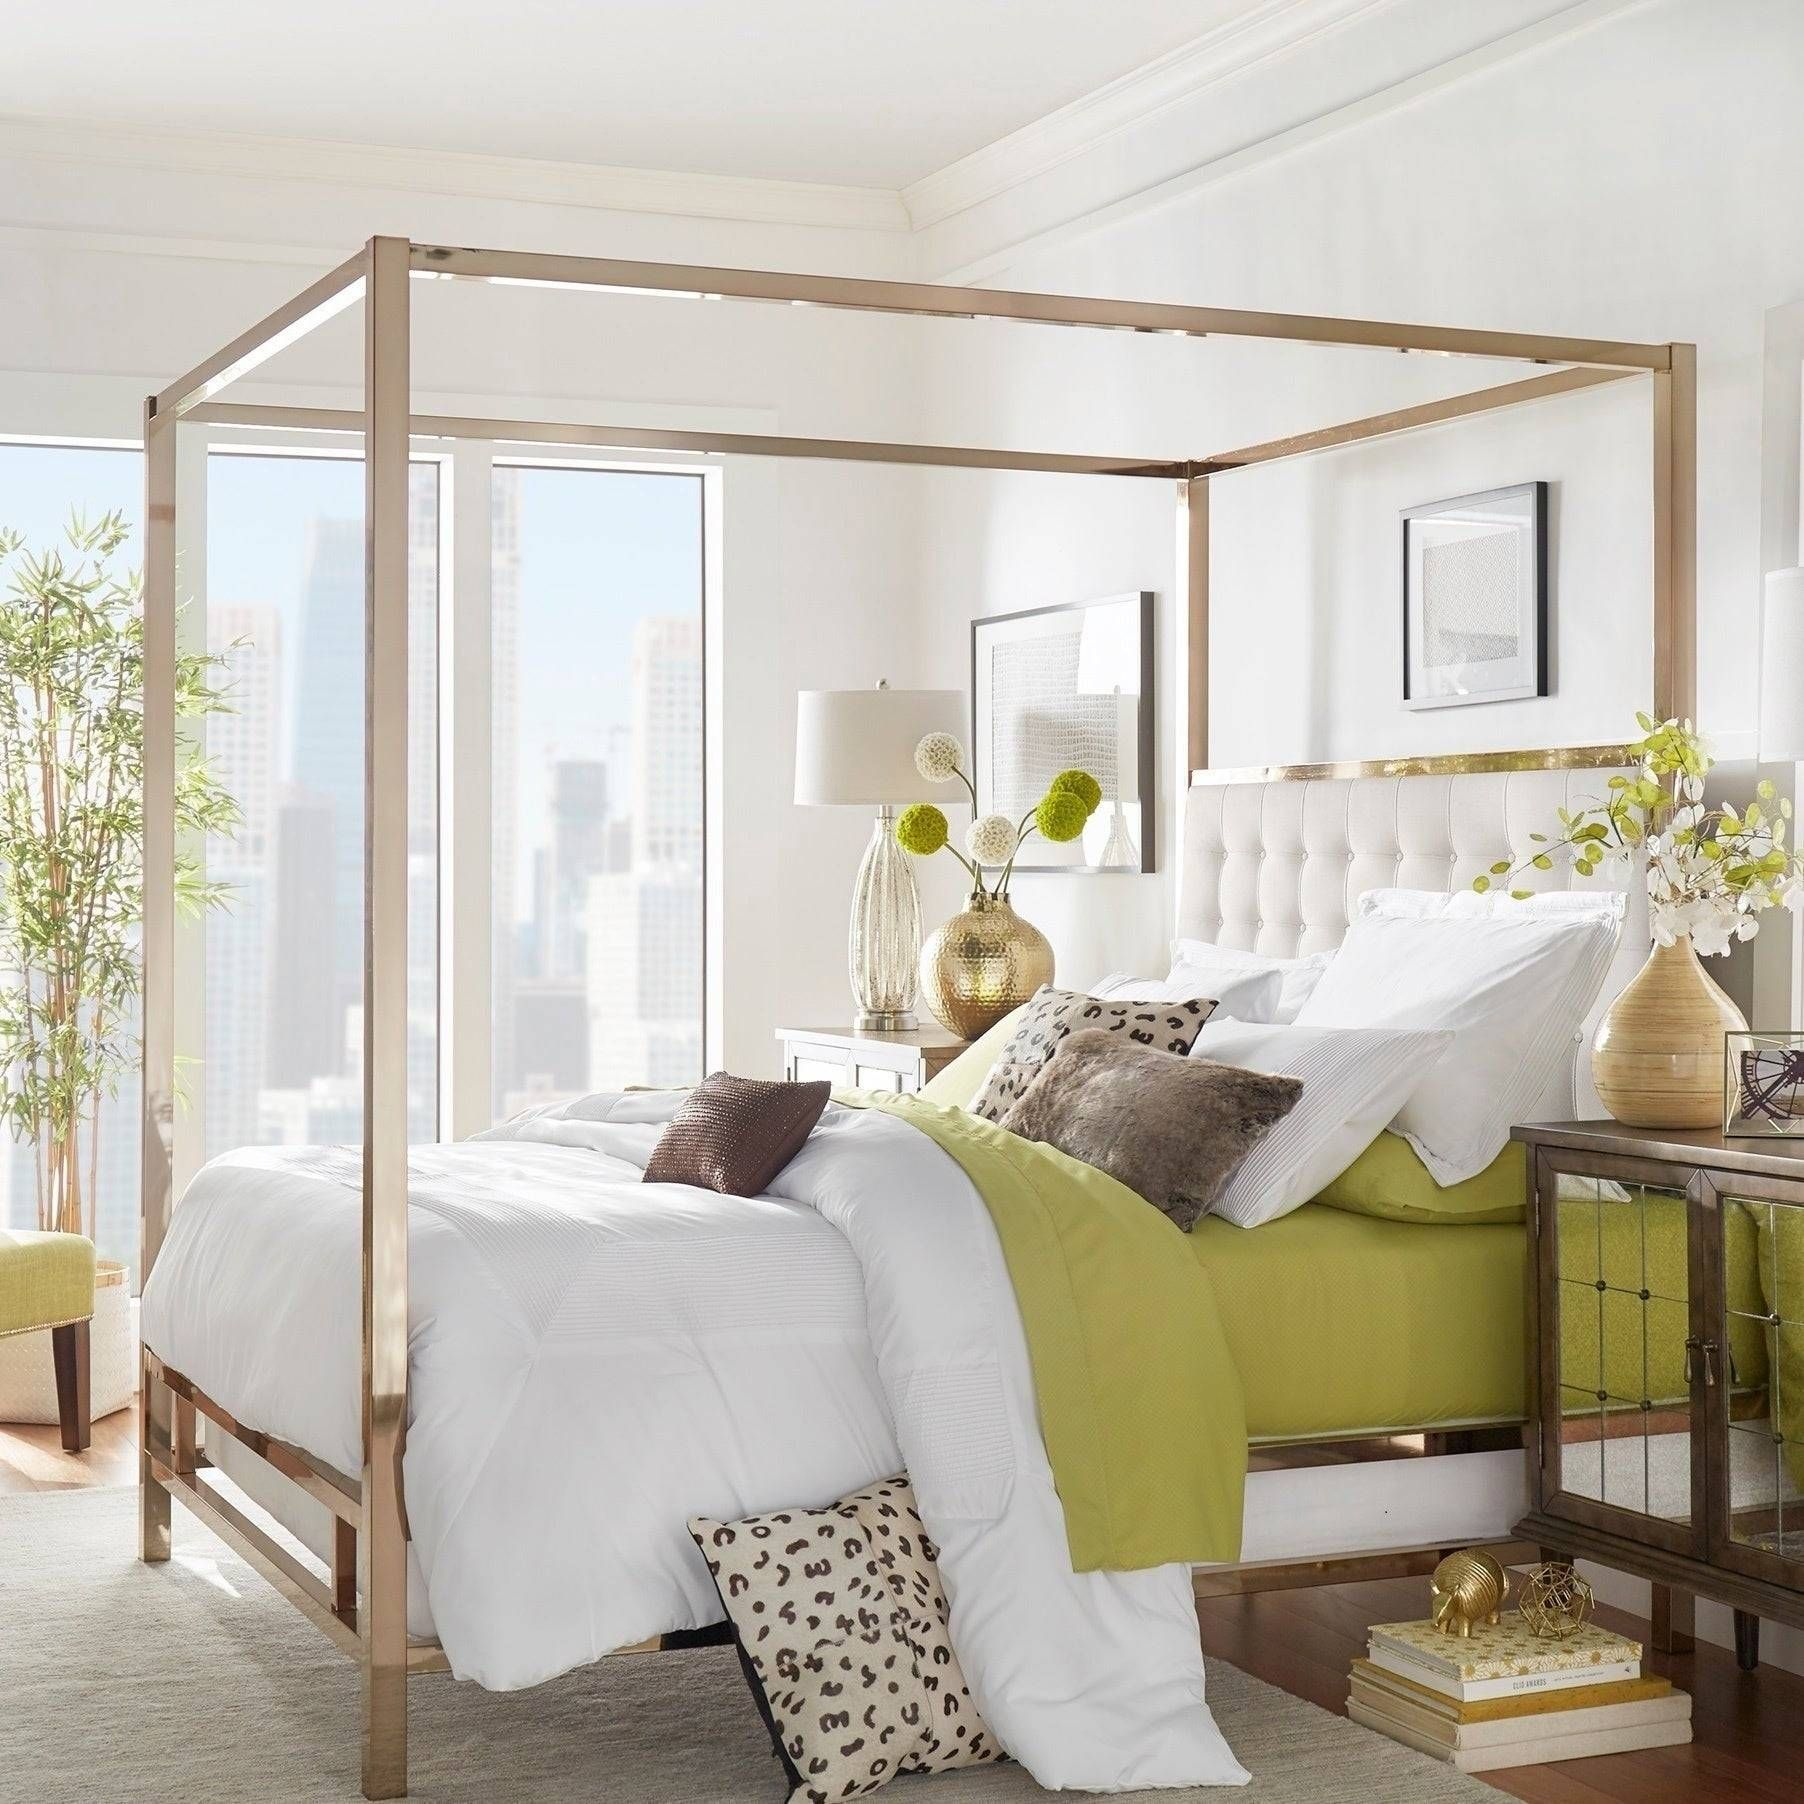 - Bedroom Design 2020 In 2020 Metal Canopy Bed, Canopy Bed Frame